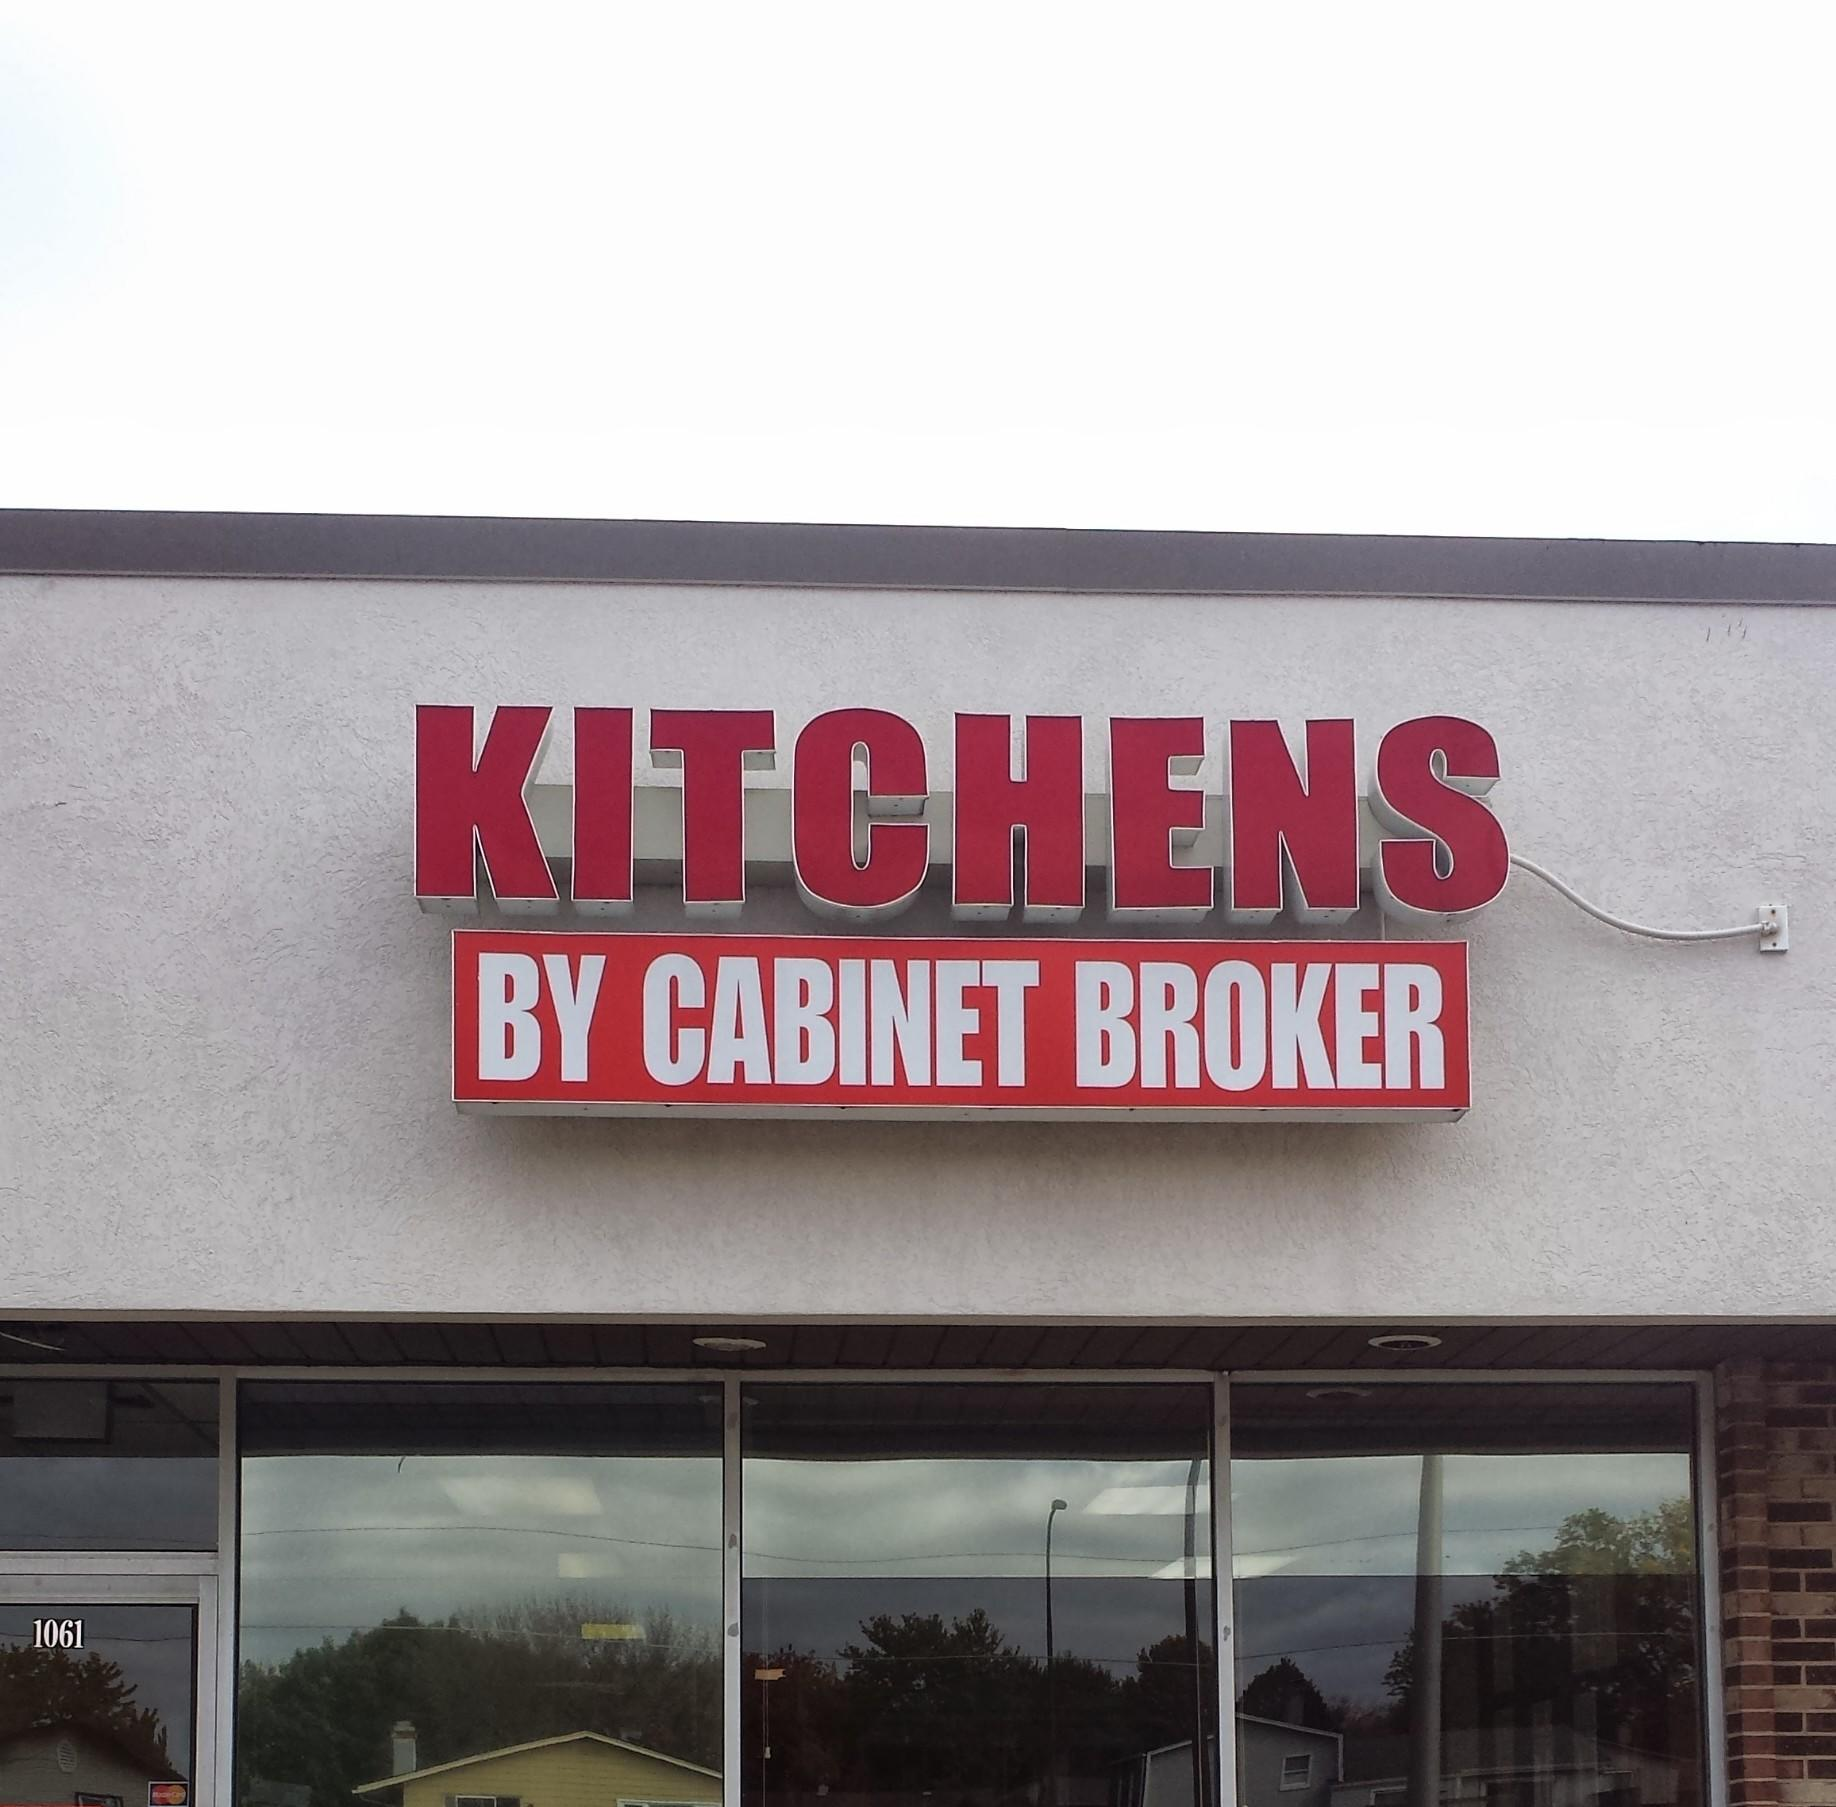 Kitchen Cabinets 60007 Of Cabinet Broker In Elk Grove Village Il 60007